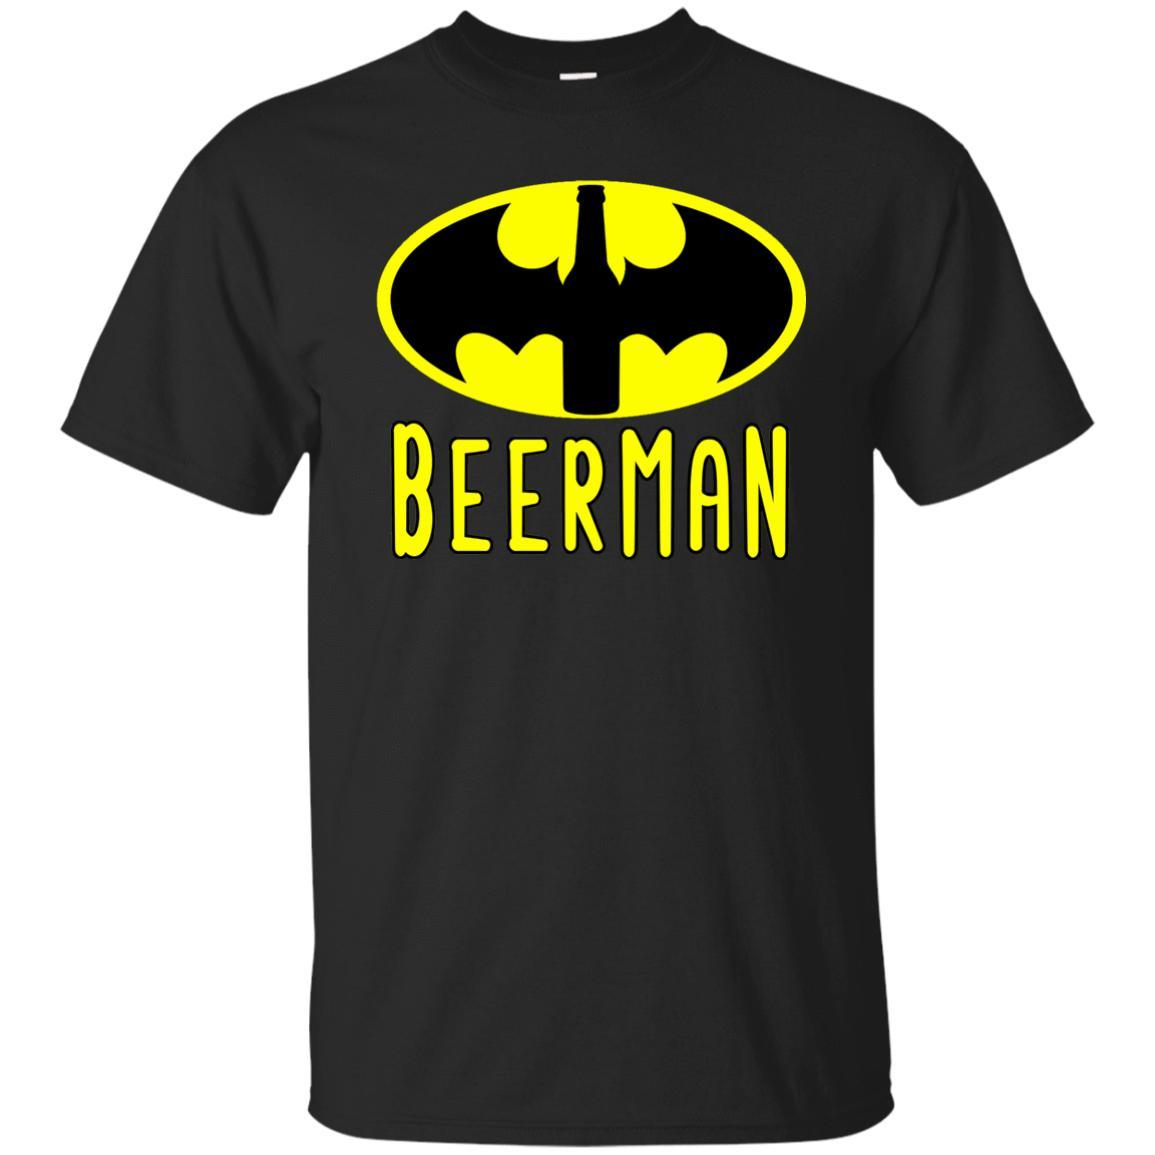 Beerman Beer Shirt for the Beer Lover